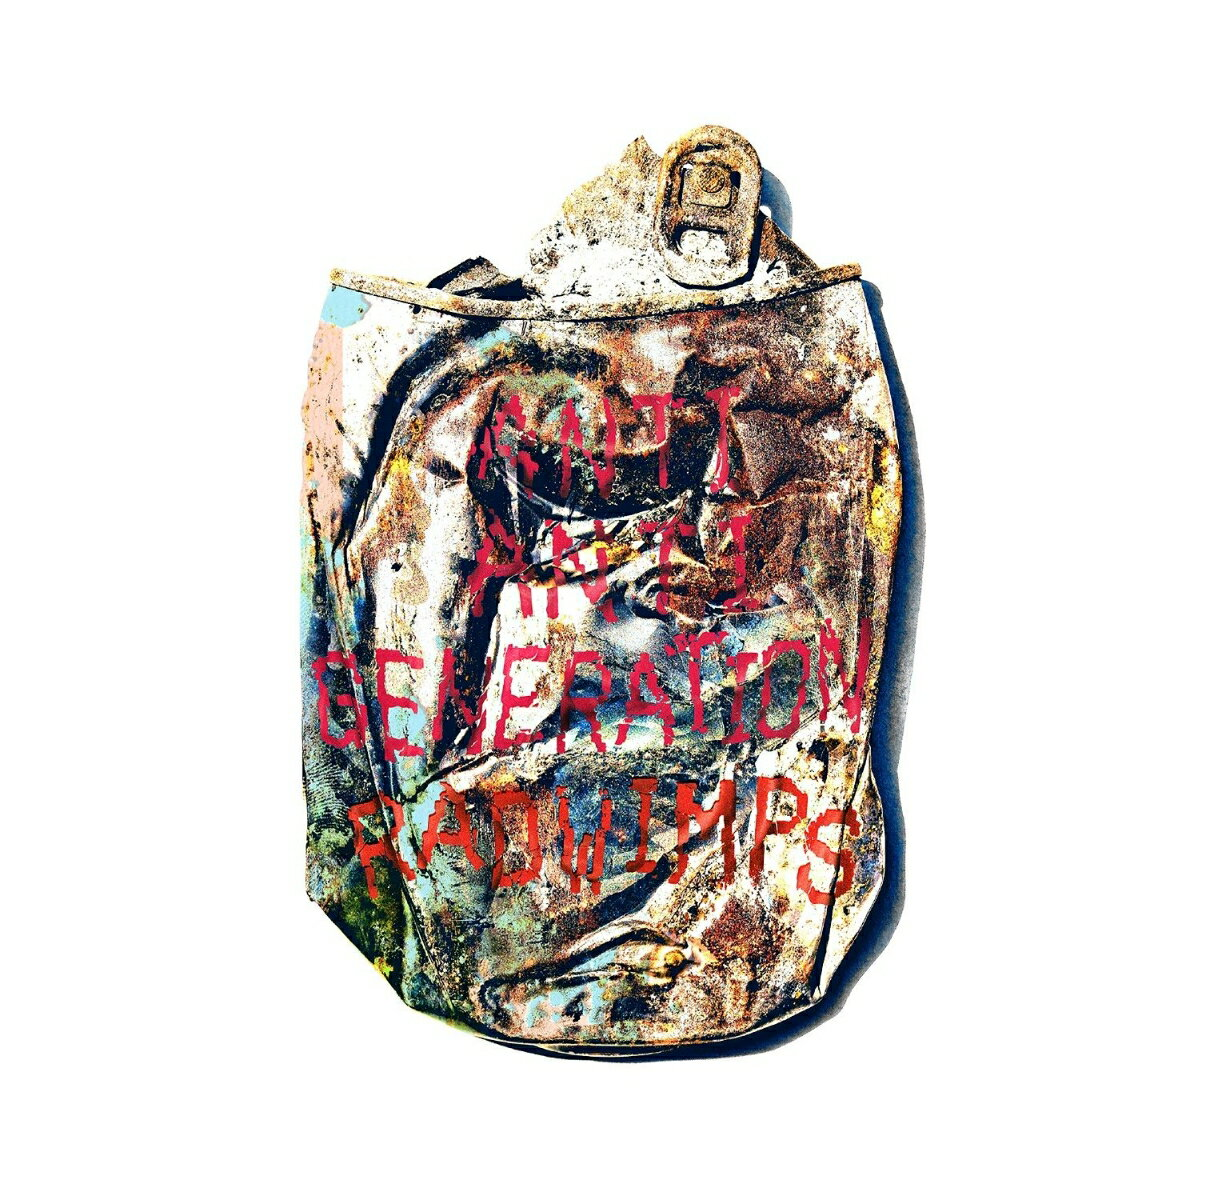 ANTI ANTI GENERATION (初回限定盤 CD+DVD) [ RADWIMPS ]